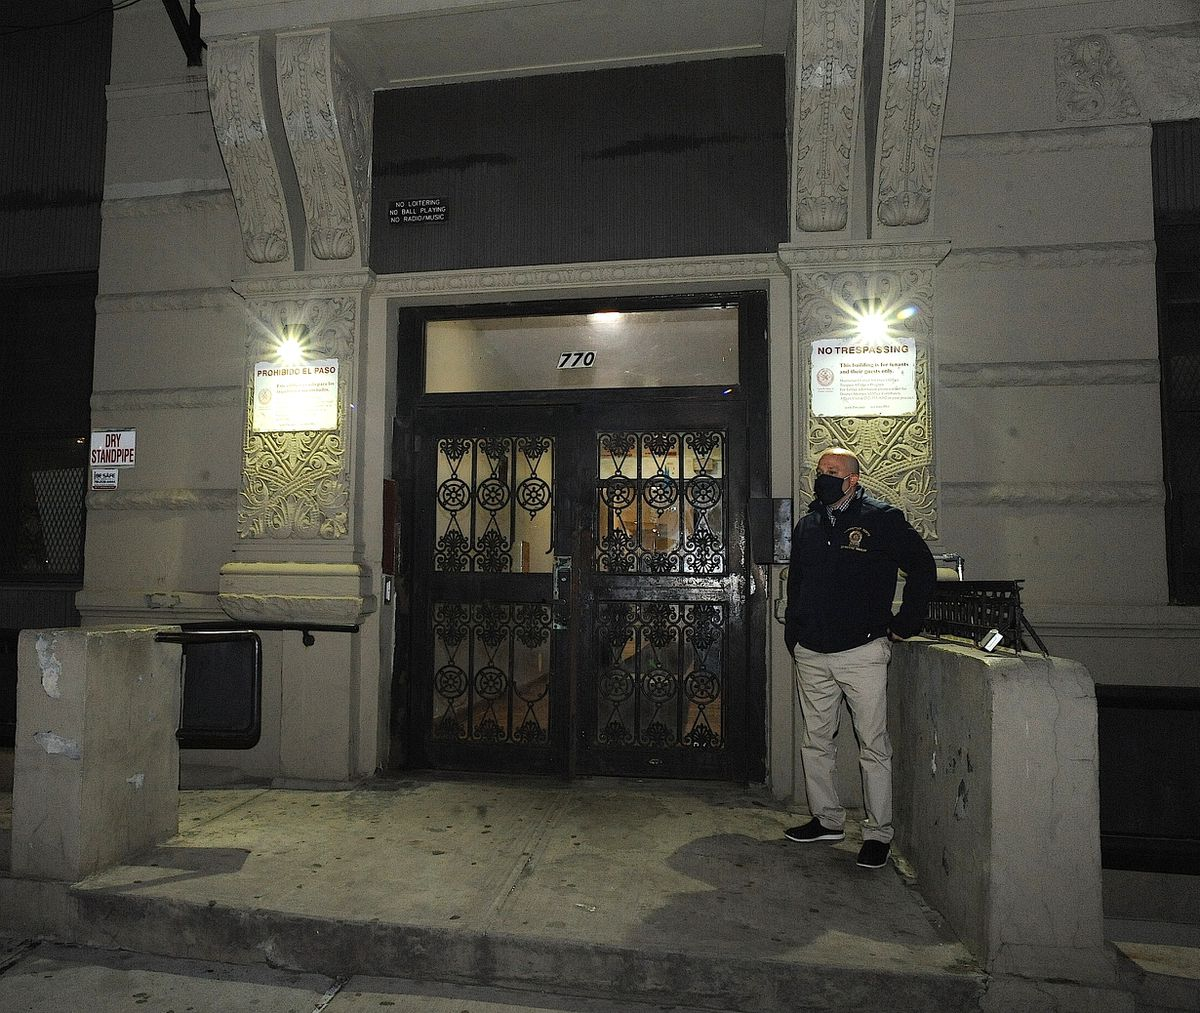 An NYPD detective is seen here at the entrance to 770 St. Nicholas Place in Manhattan where an unidentified body was found in a bag on the 6th floor on Friday, April 23, 2021.